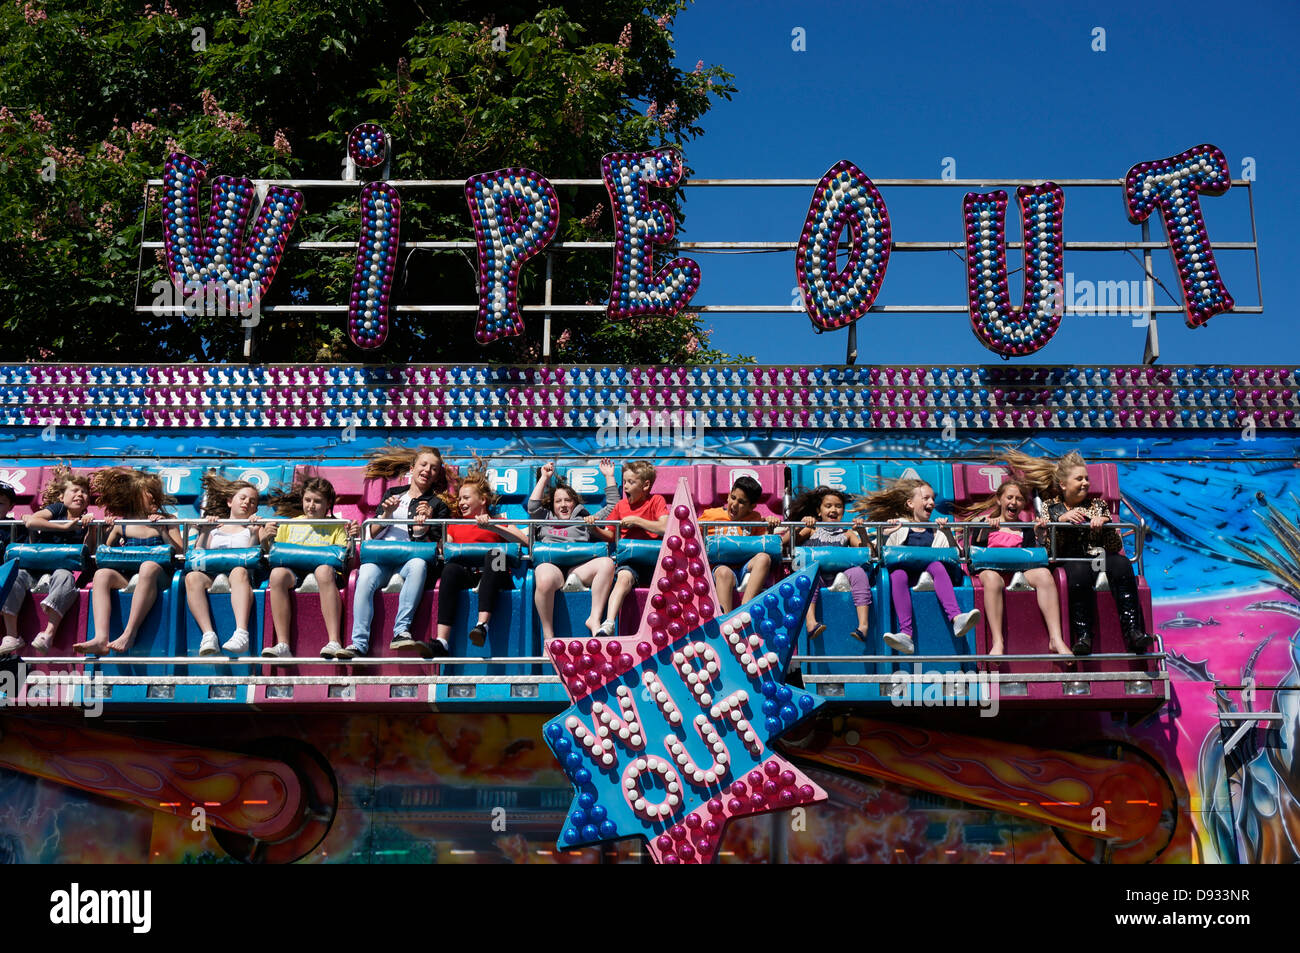 Noisy teenagers sitting down and secured in place, enjoying the Wipe Out thrill ride, at an outdoor summer fair. - Stock Image